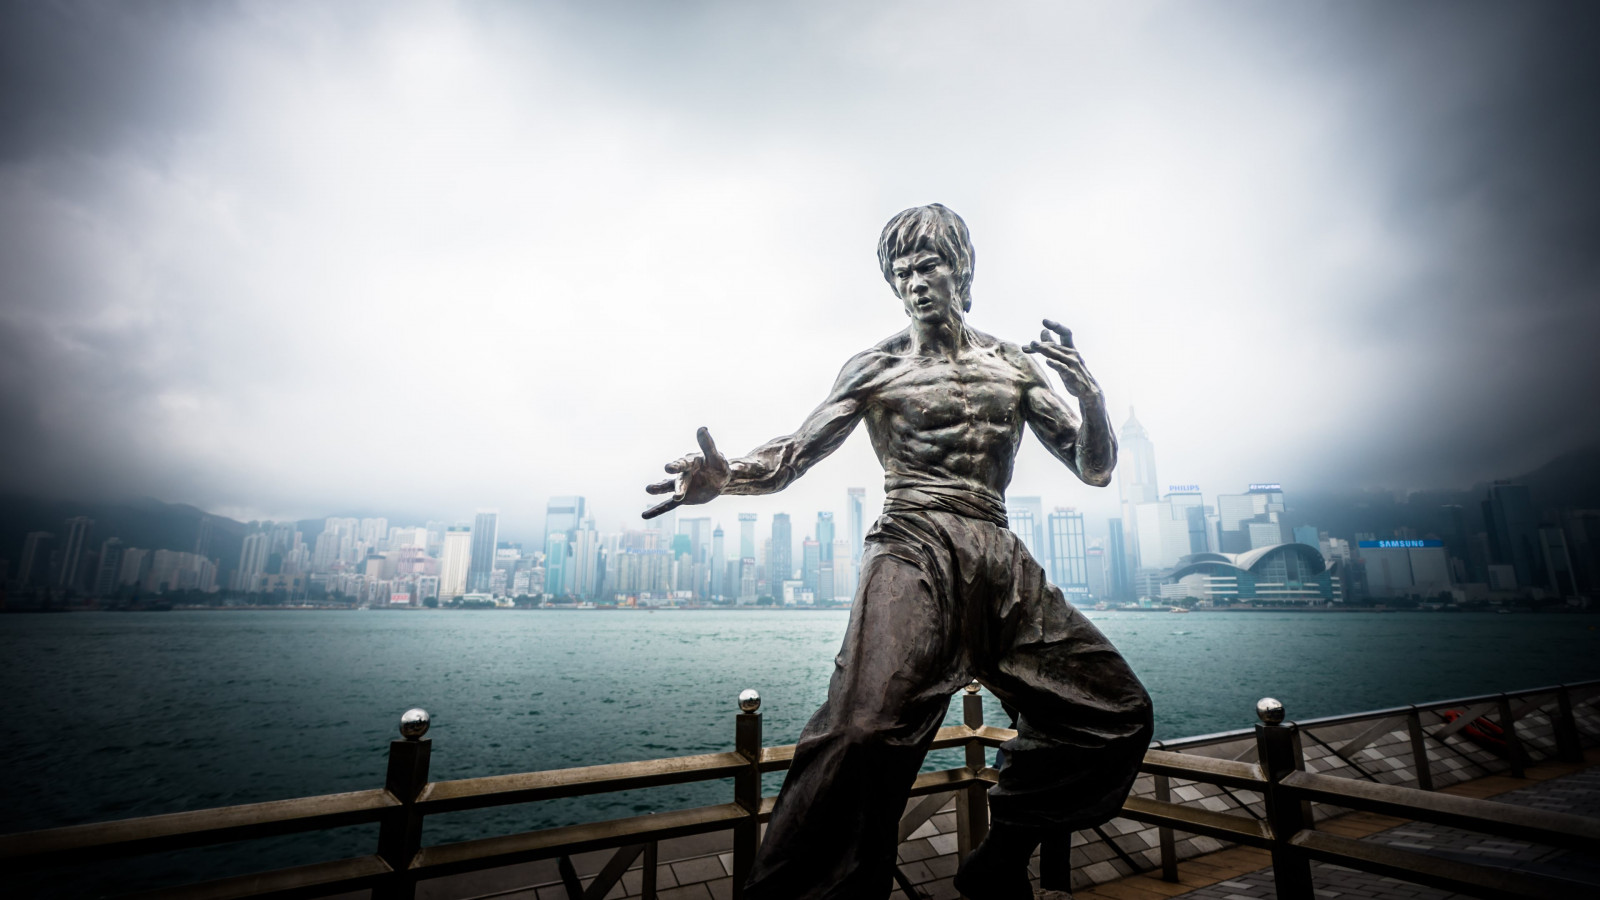 Bruce Lee statue from Hong Kong wallpaper 1600x900